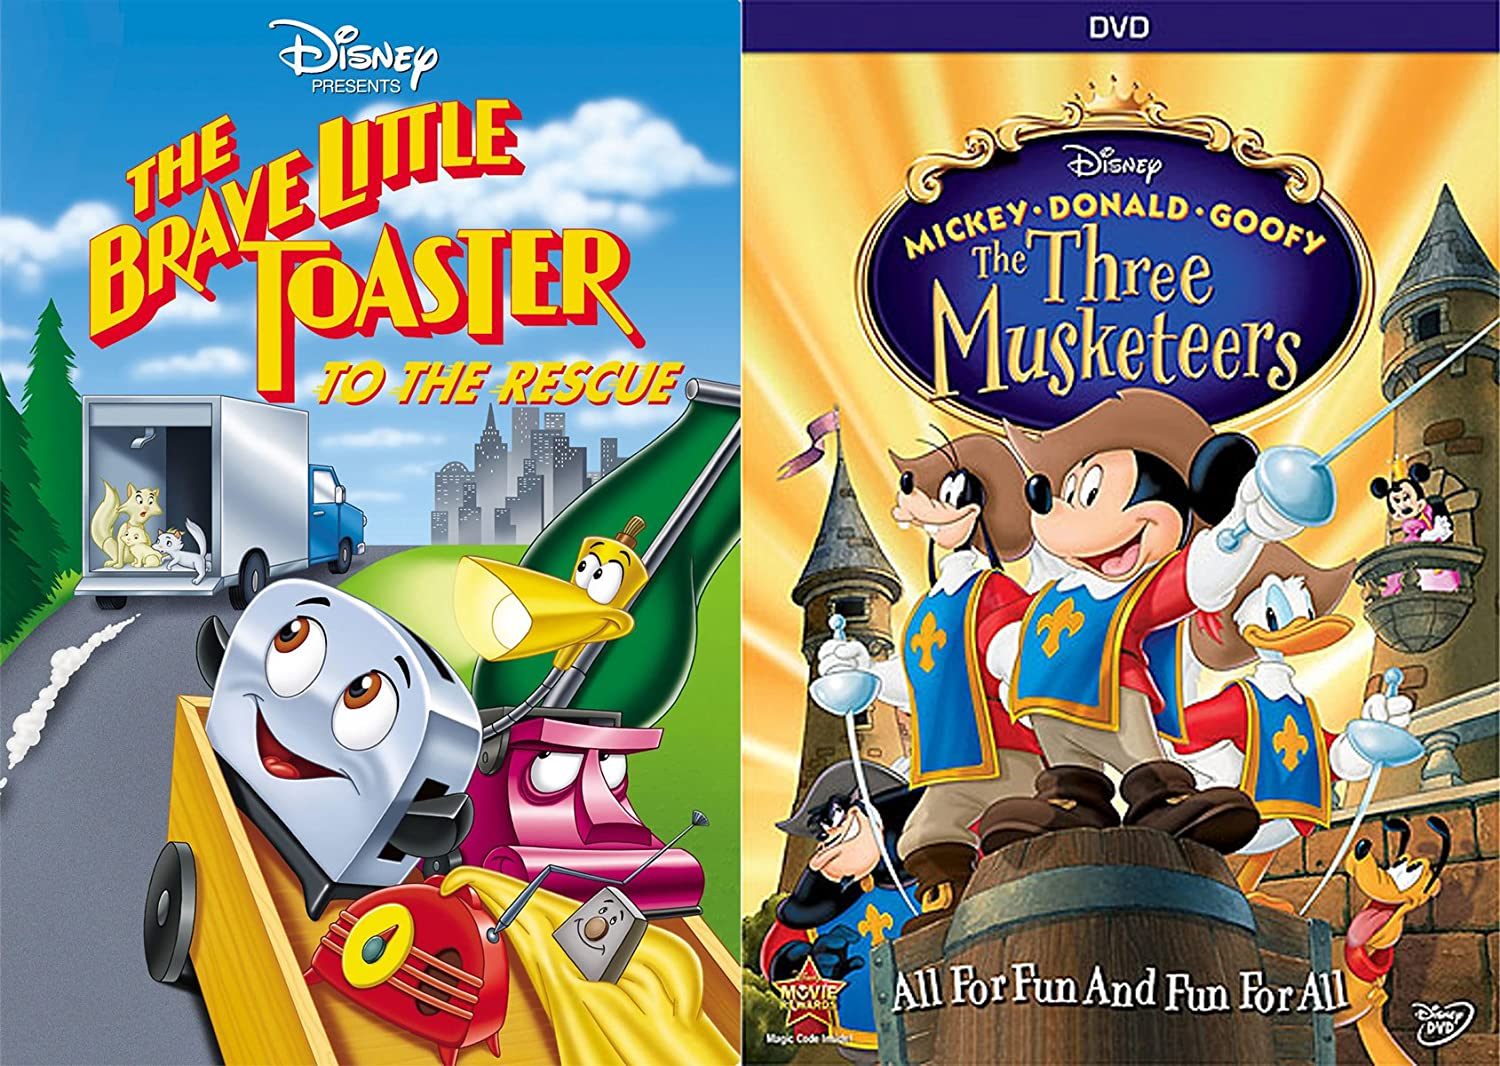 All For Fun Mickey Donald Goofy Three Musketeers + The Brave Little Toaster To the Rescue Disney Double Feature